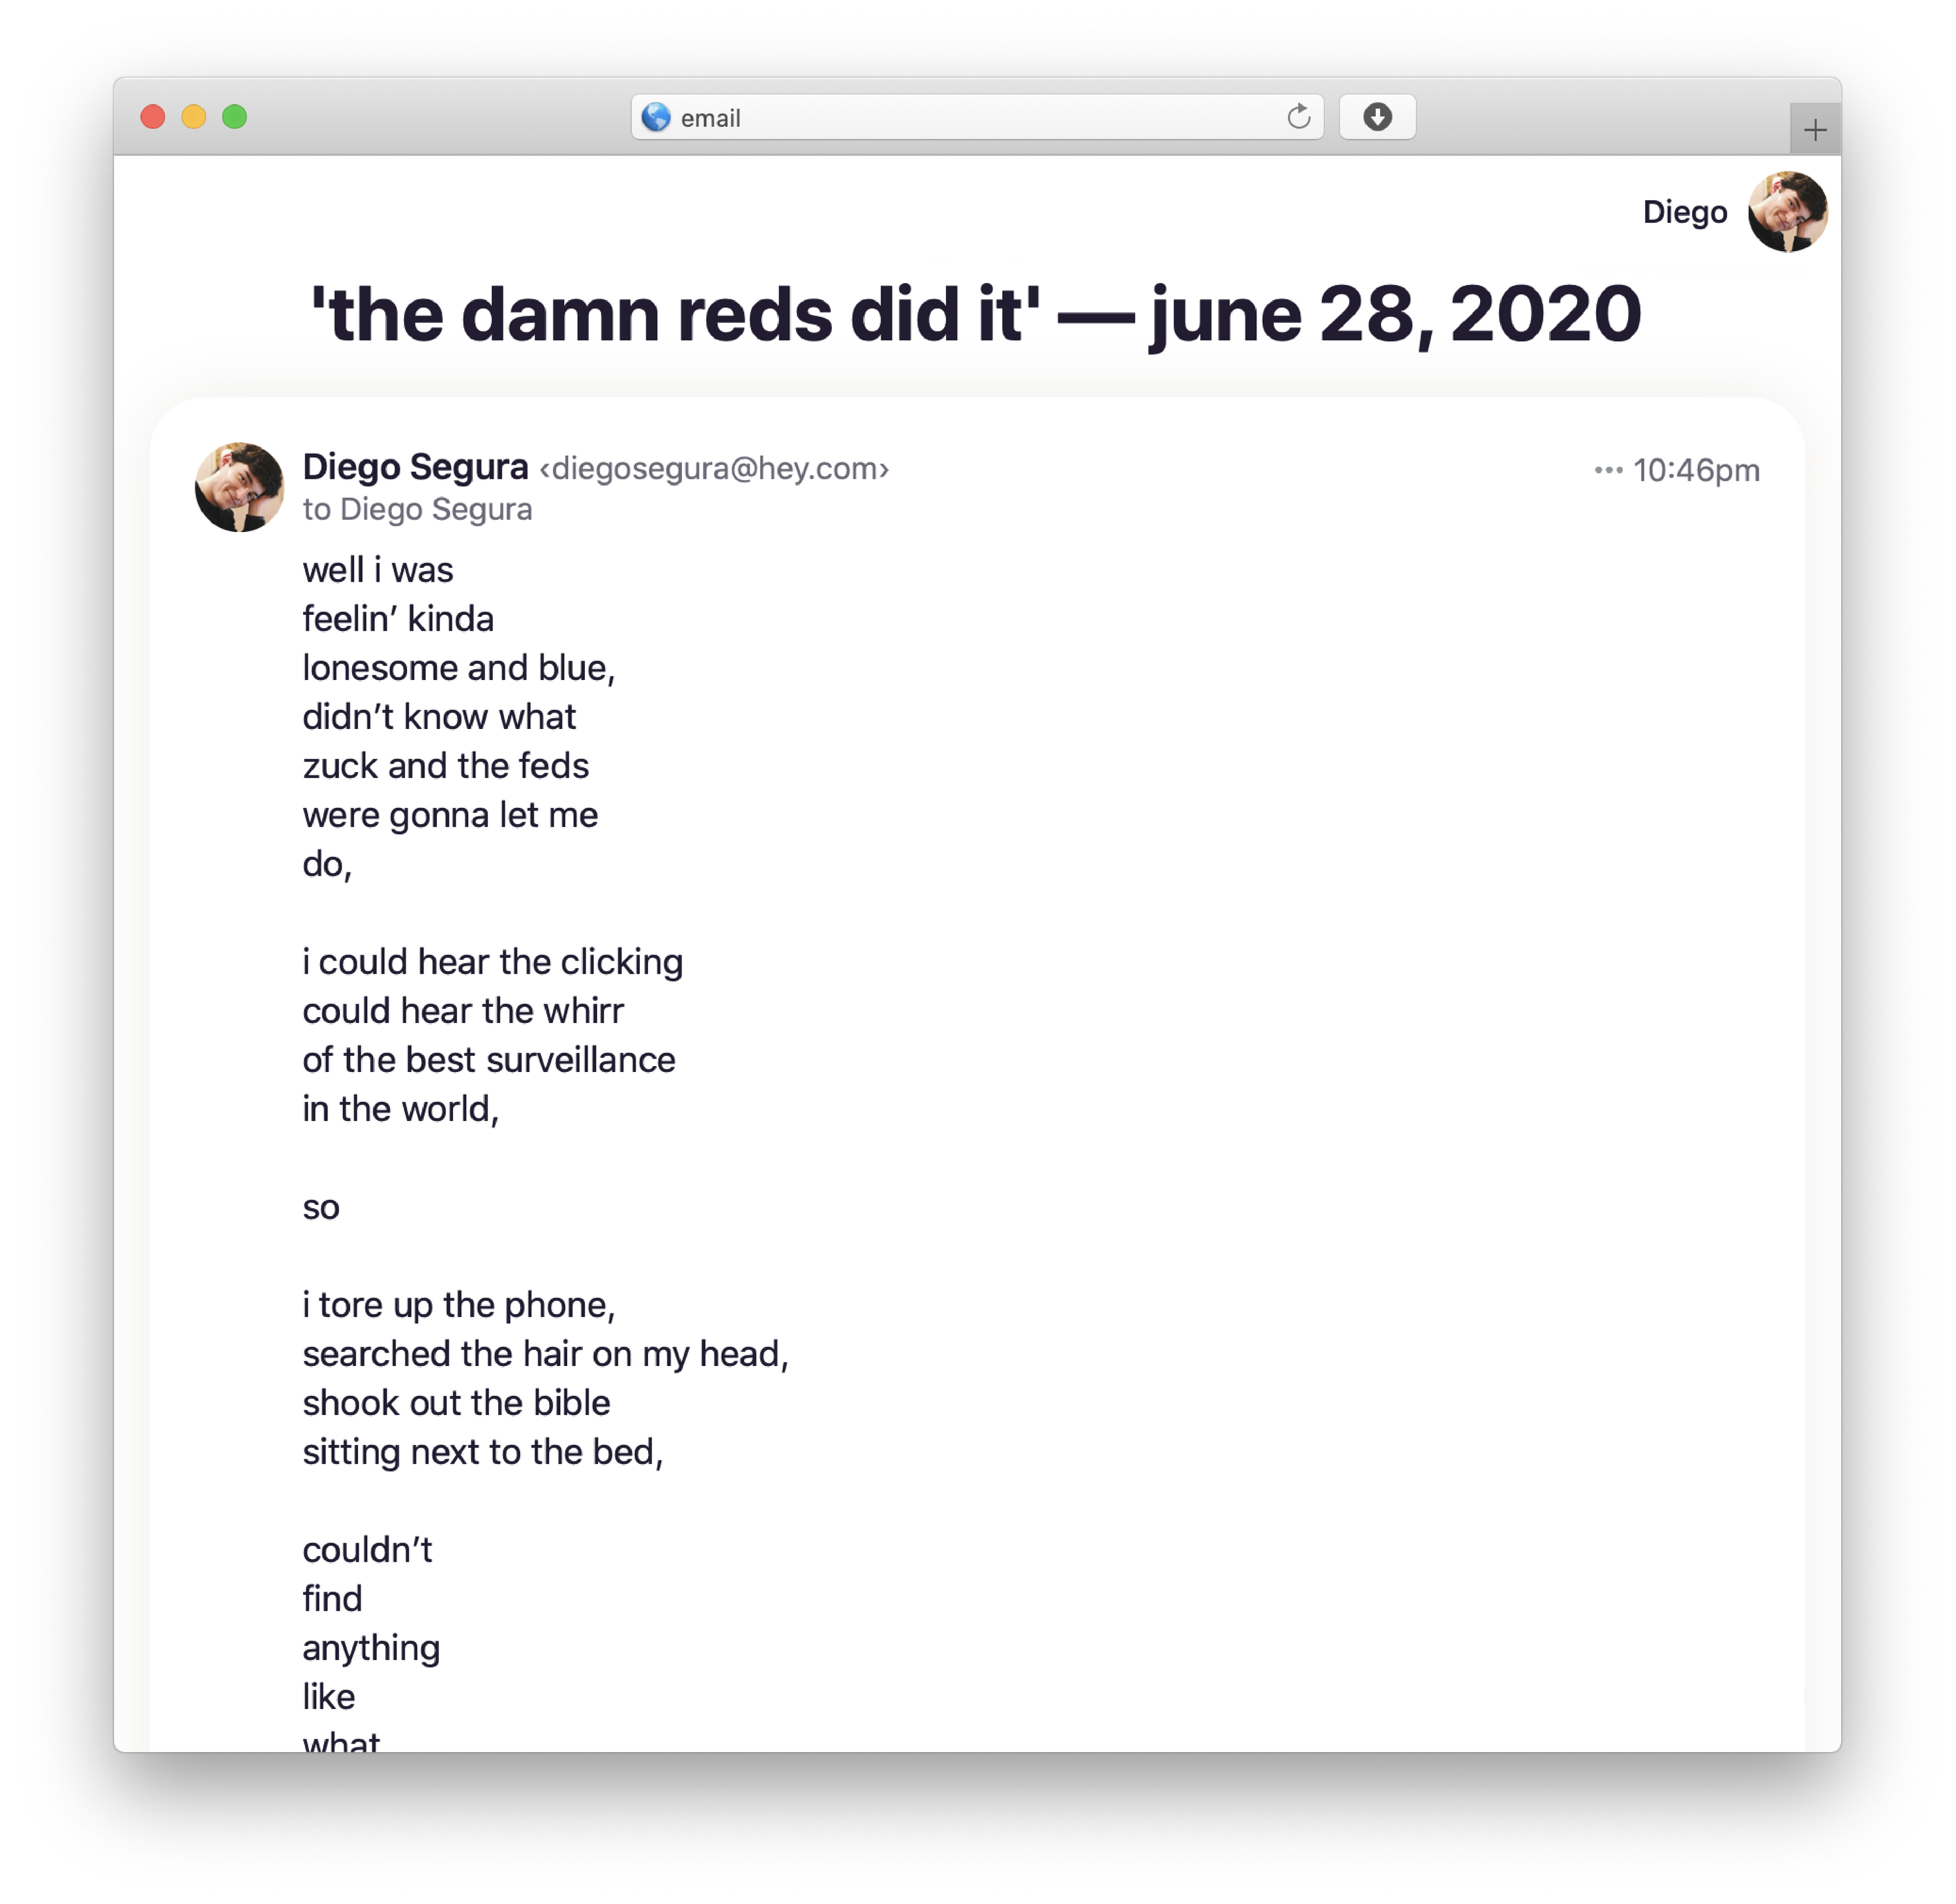 a screenshot of the emails you'll receive. just poems. plain text. no advertisements.